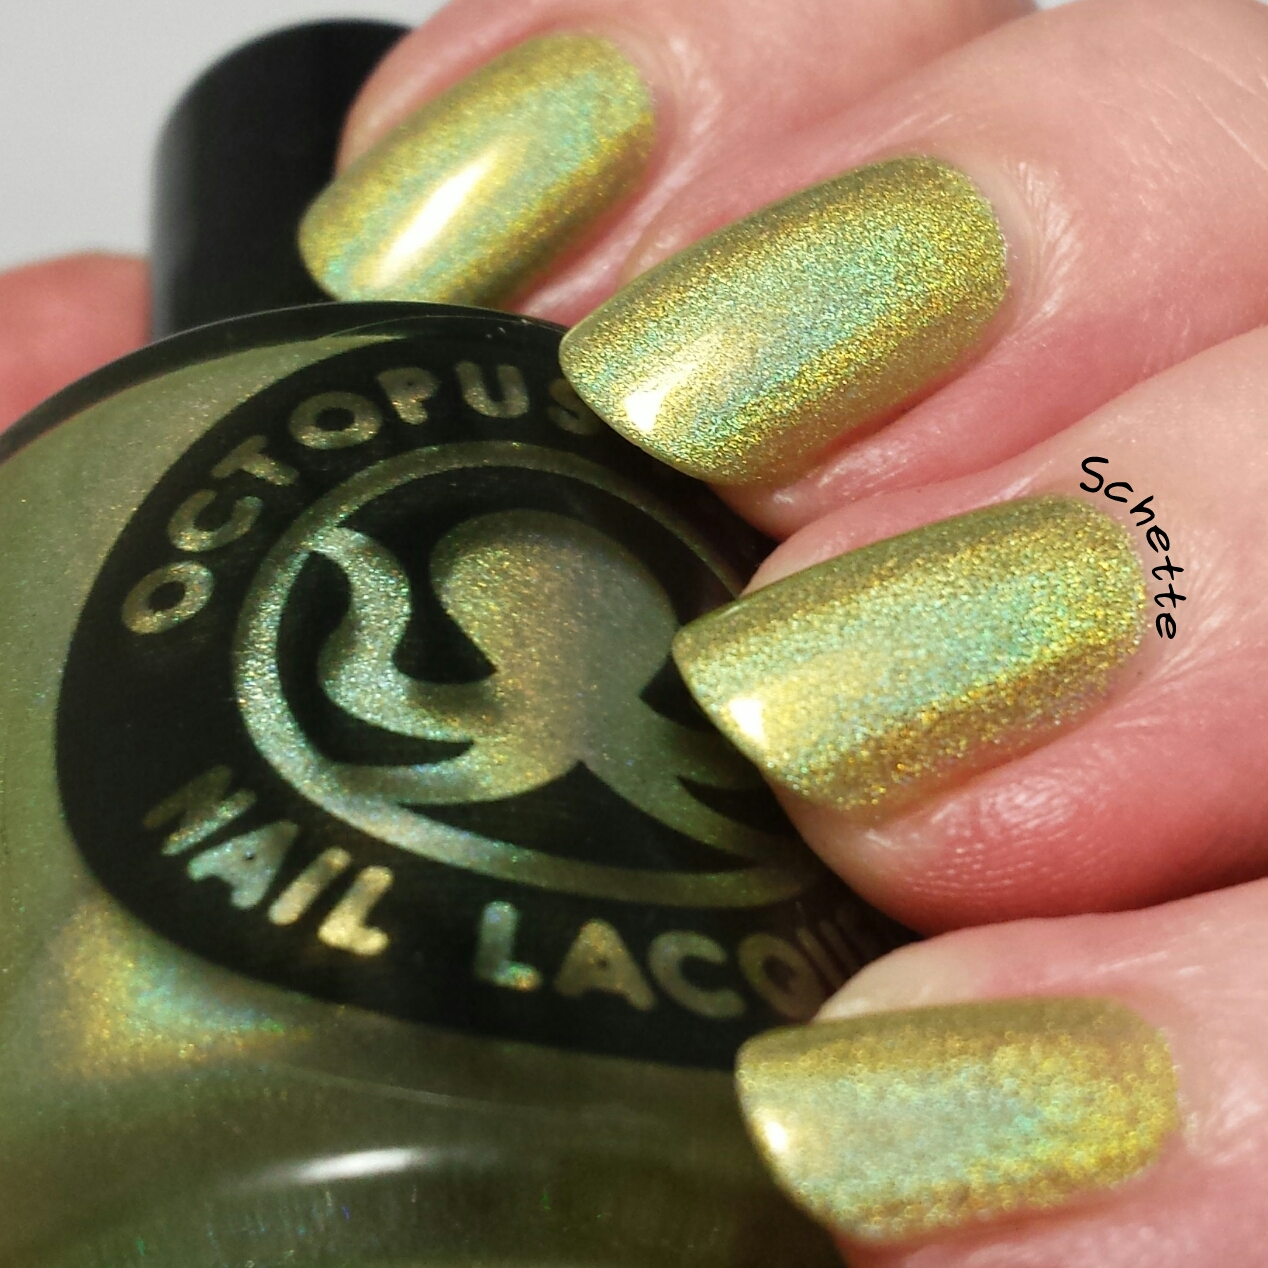 Octopus Party Nail Lacquer - Absinthe-Minded